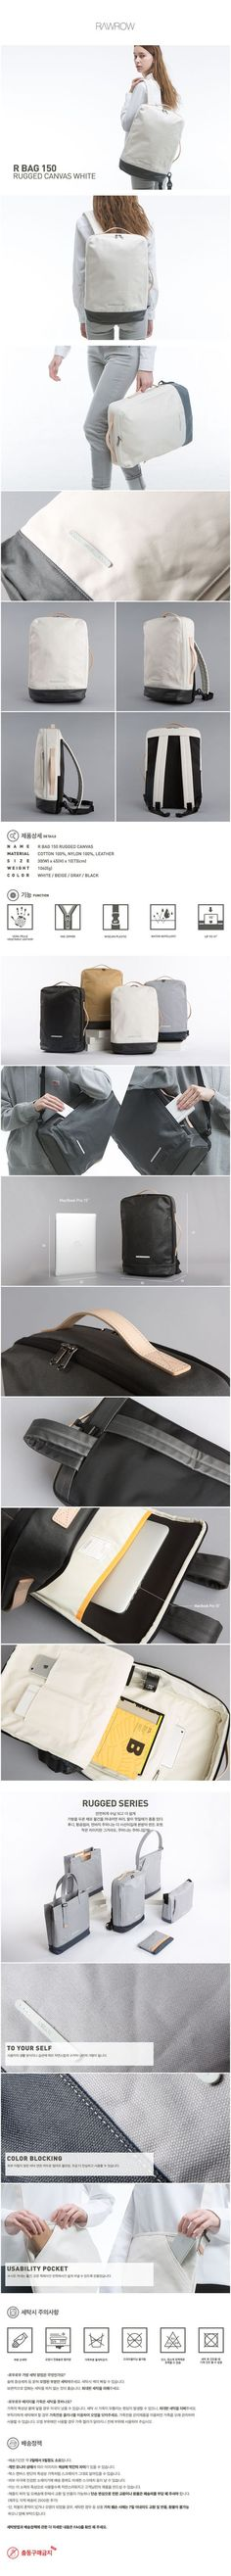 R BAG 150 RUGGED CANVAS WHITE                                                                                                                                                                                 More: